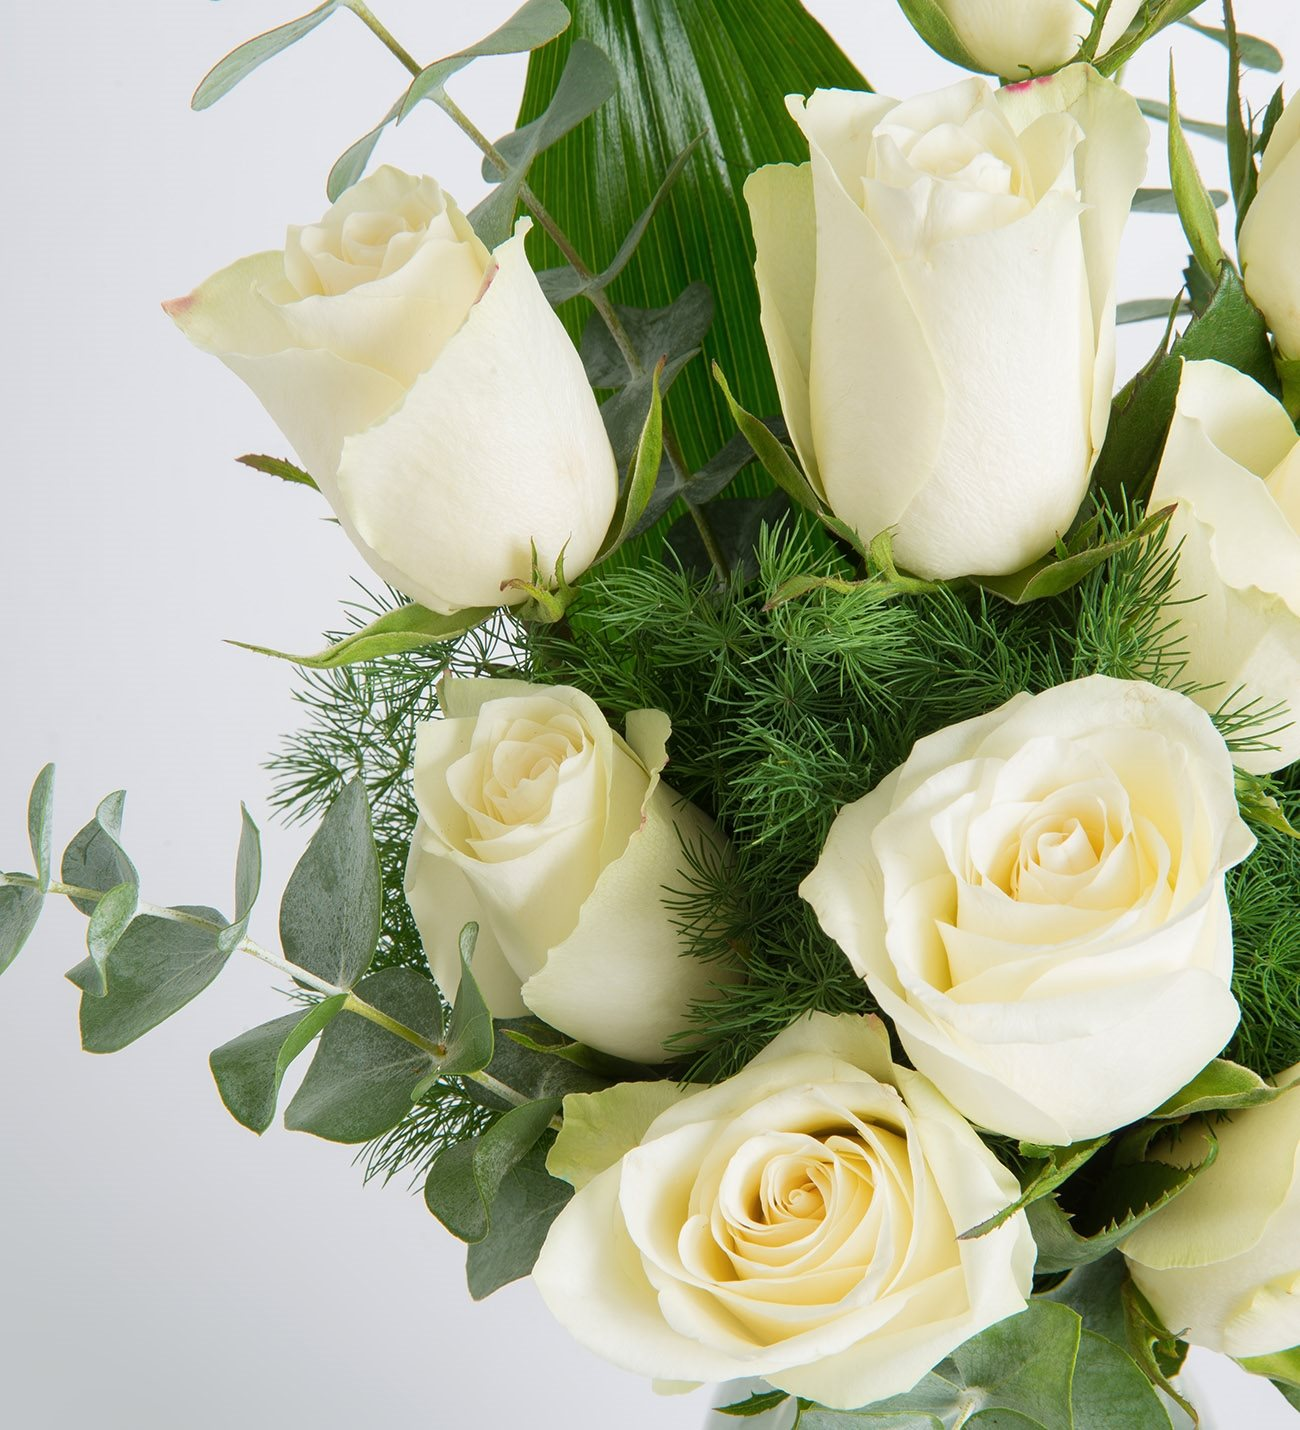 10 white roses purity of you izmirmasajfo